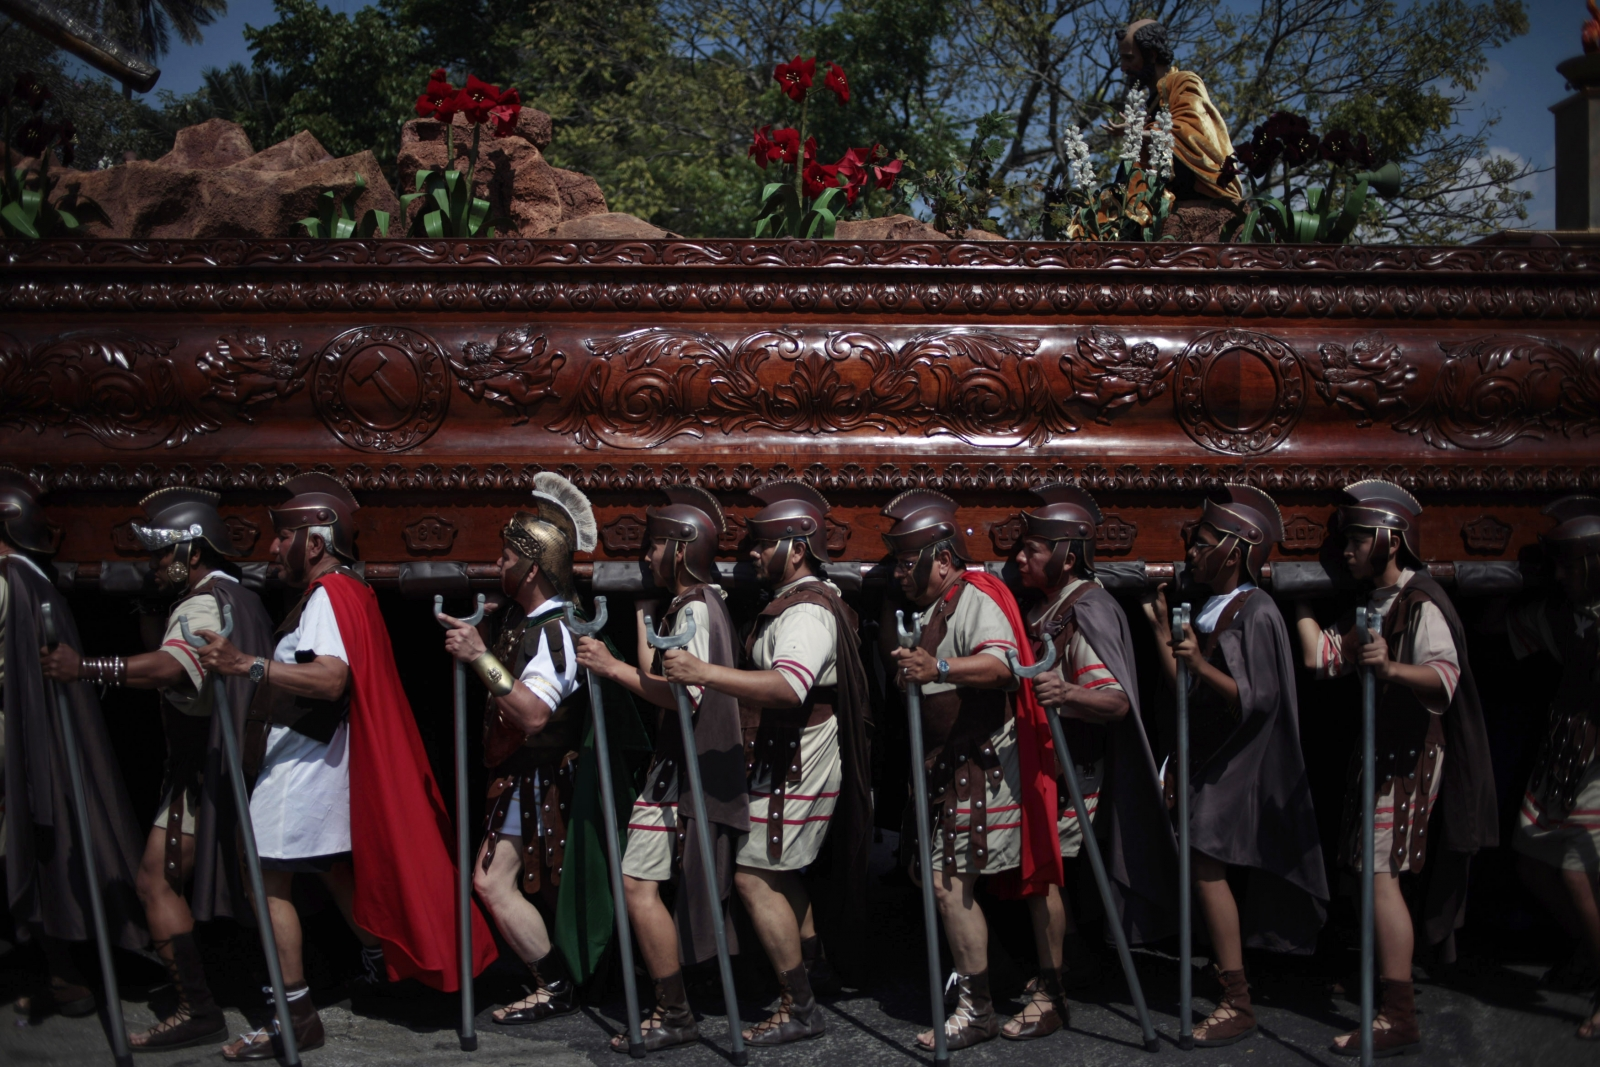 Men, dressed in traditional Roman costumes, carry a statue of Jesus Nazareno during a procession to mark the second Sunday of Lent, in the streets of Guatemala City